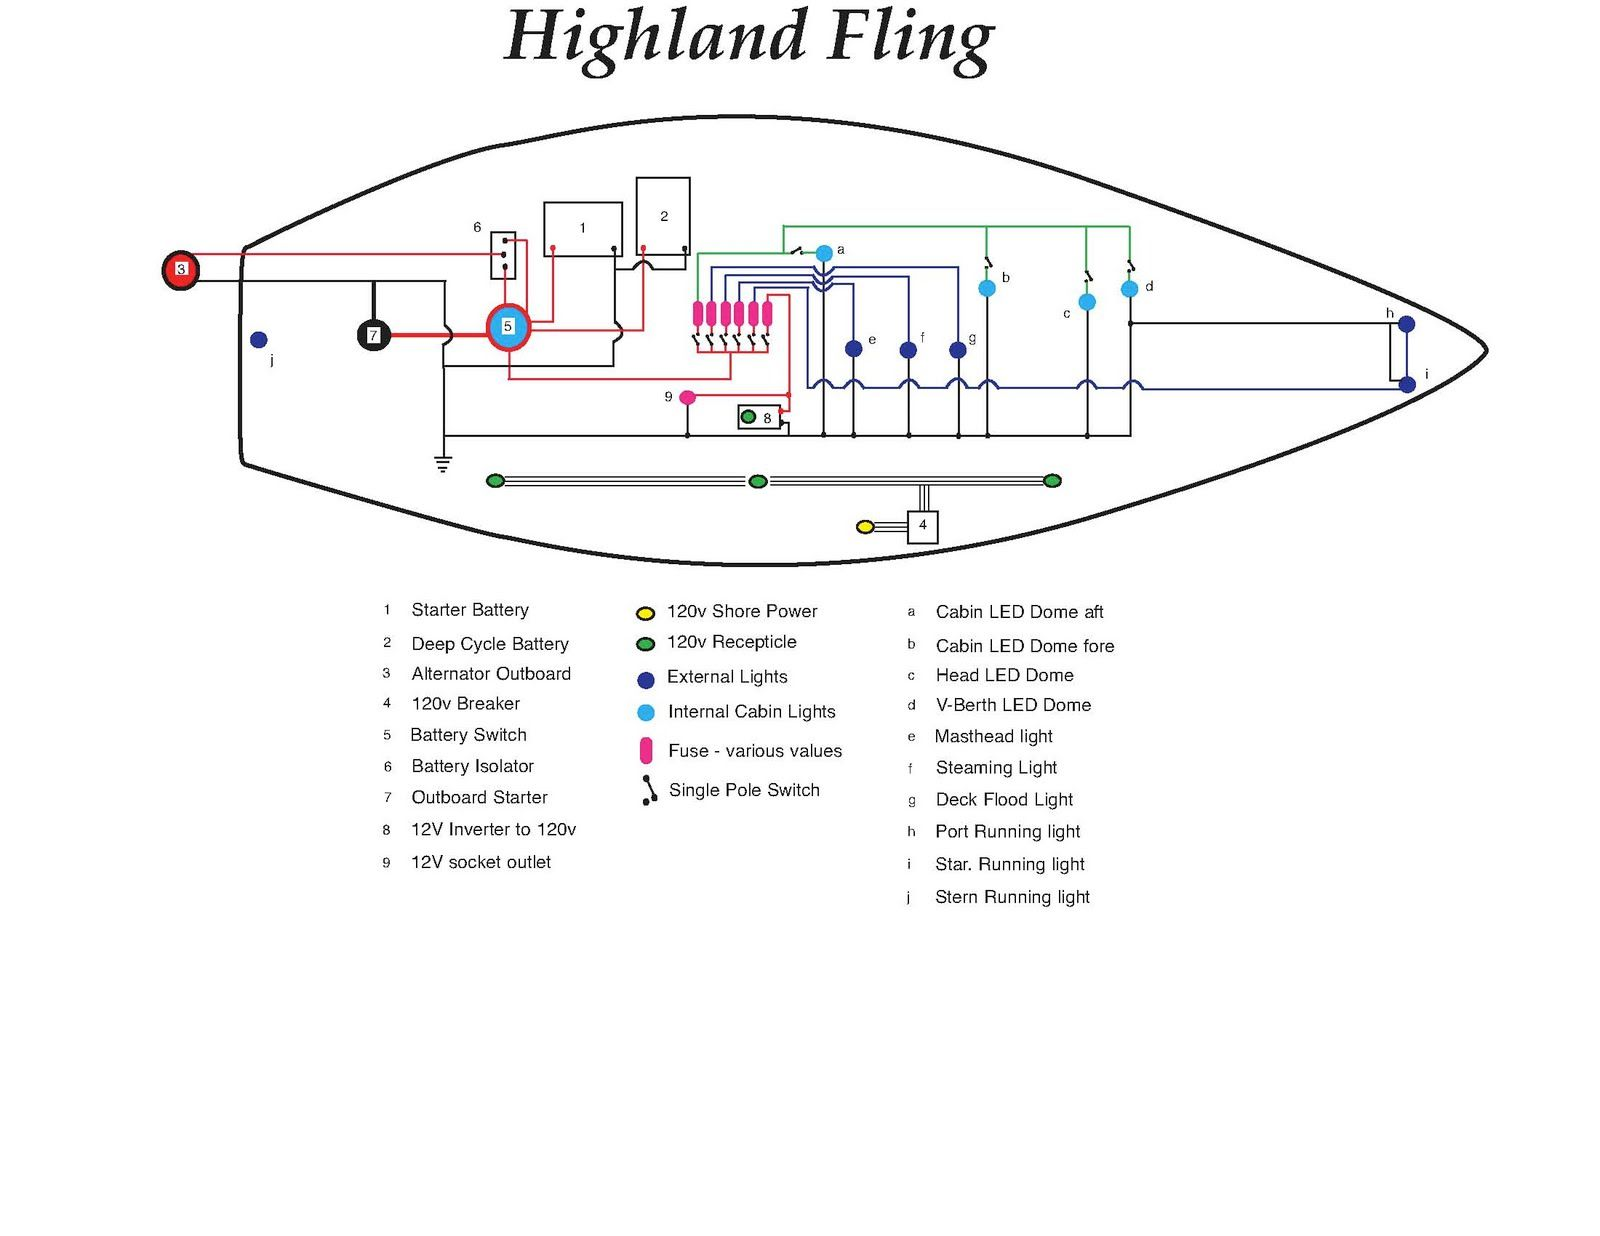 ffdec787036bb8e361b38a7fe86274dc highland fling, my grampian 26 sailboat wiring diagram sailboat wiring schematic at creativeand.co